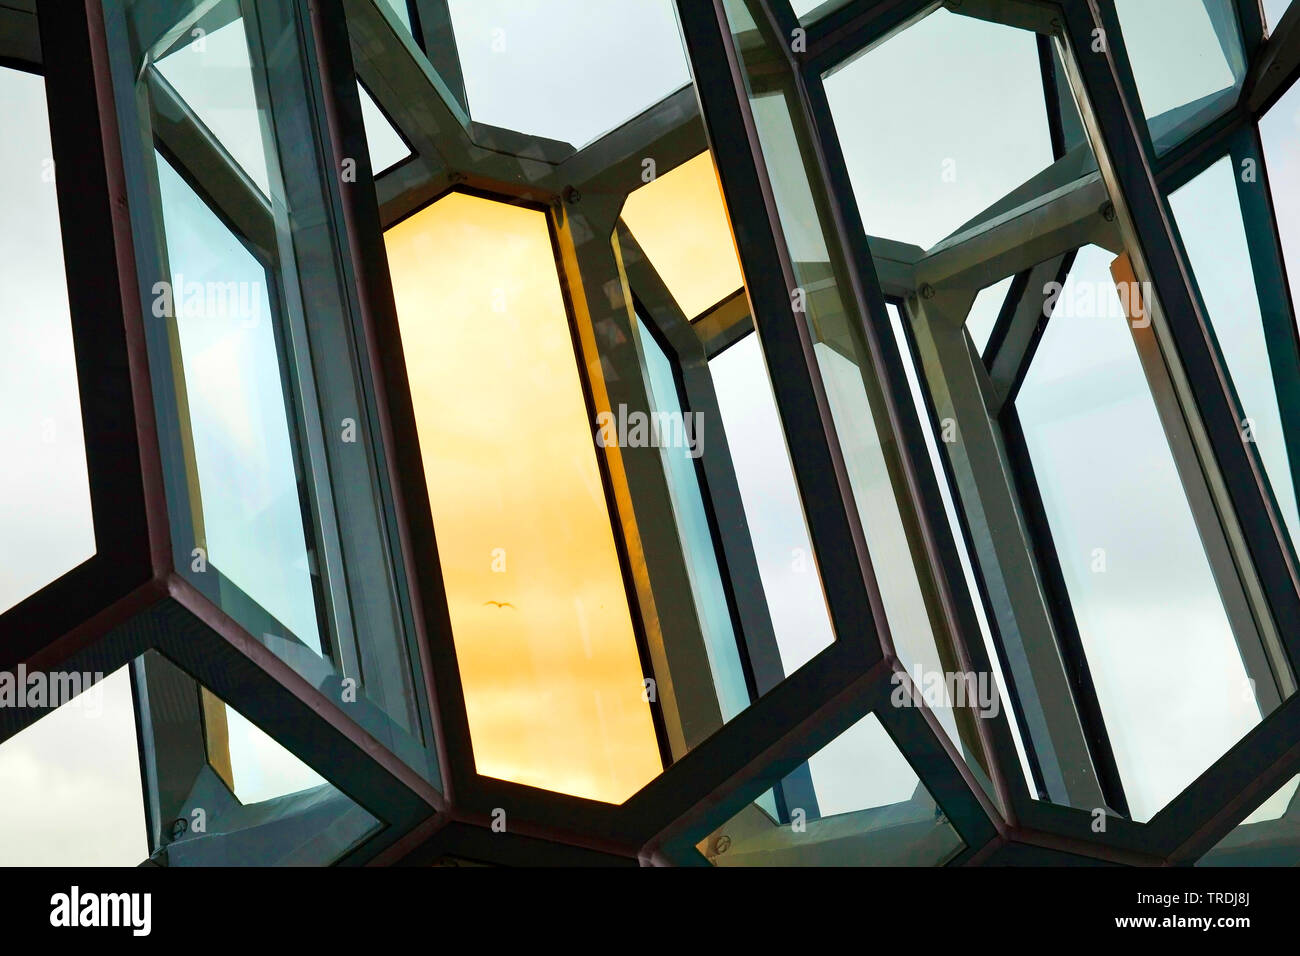 Fassadendetail der wabenartigen Struktur aus dichromatischen Glas, Konzerthaus Harpa, Island, Reykjavik | distinctive colored glass facade of Harpa co - Stock Image